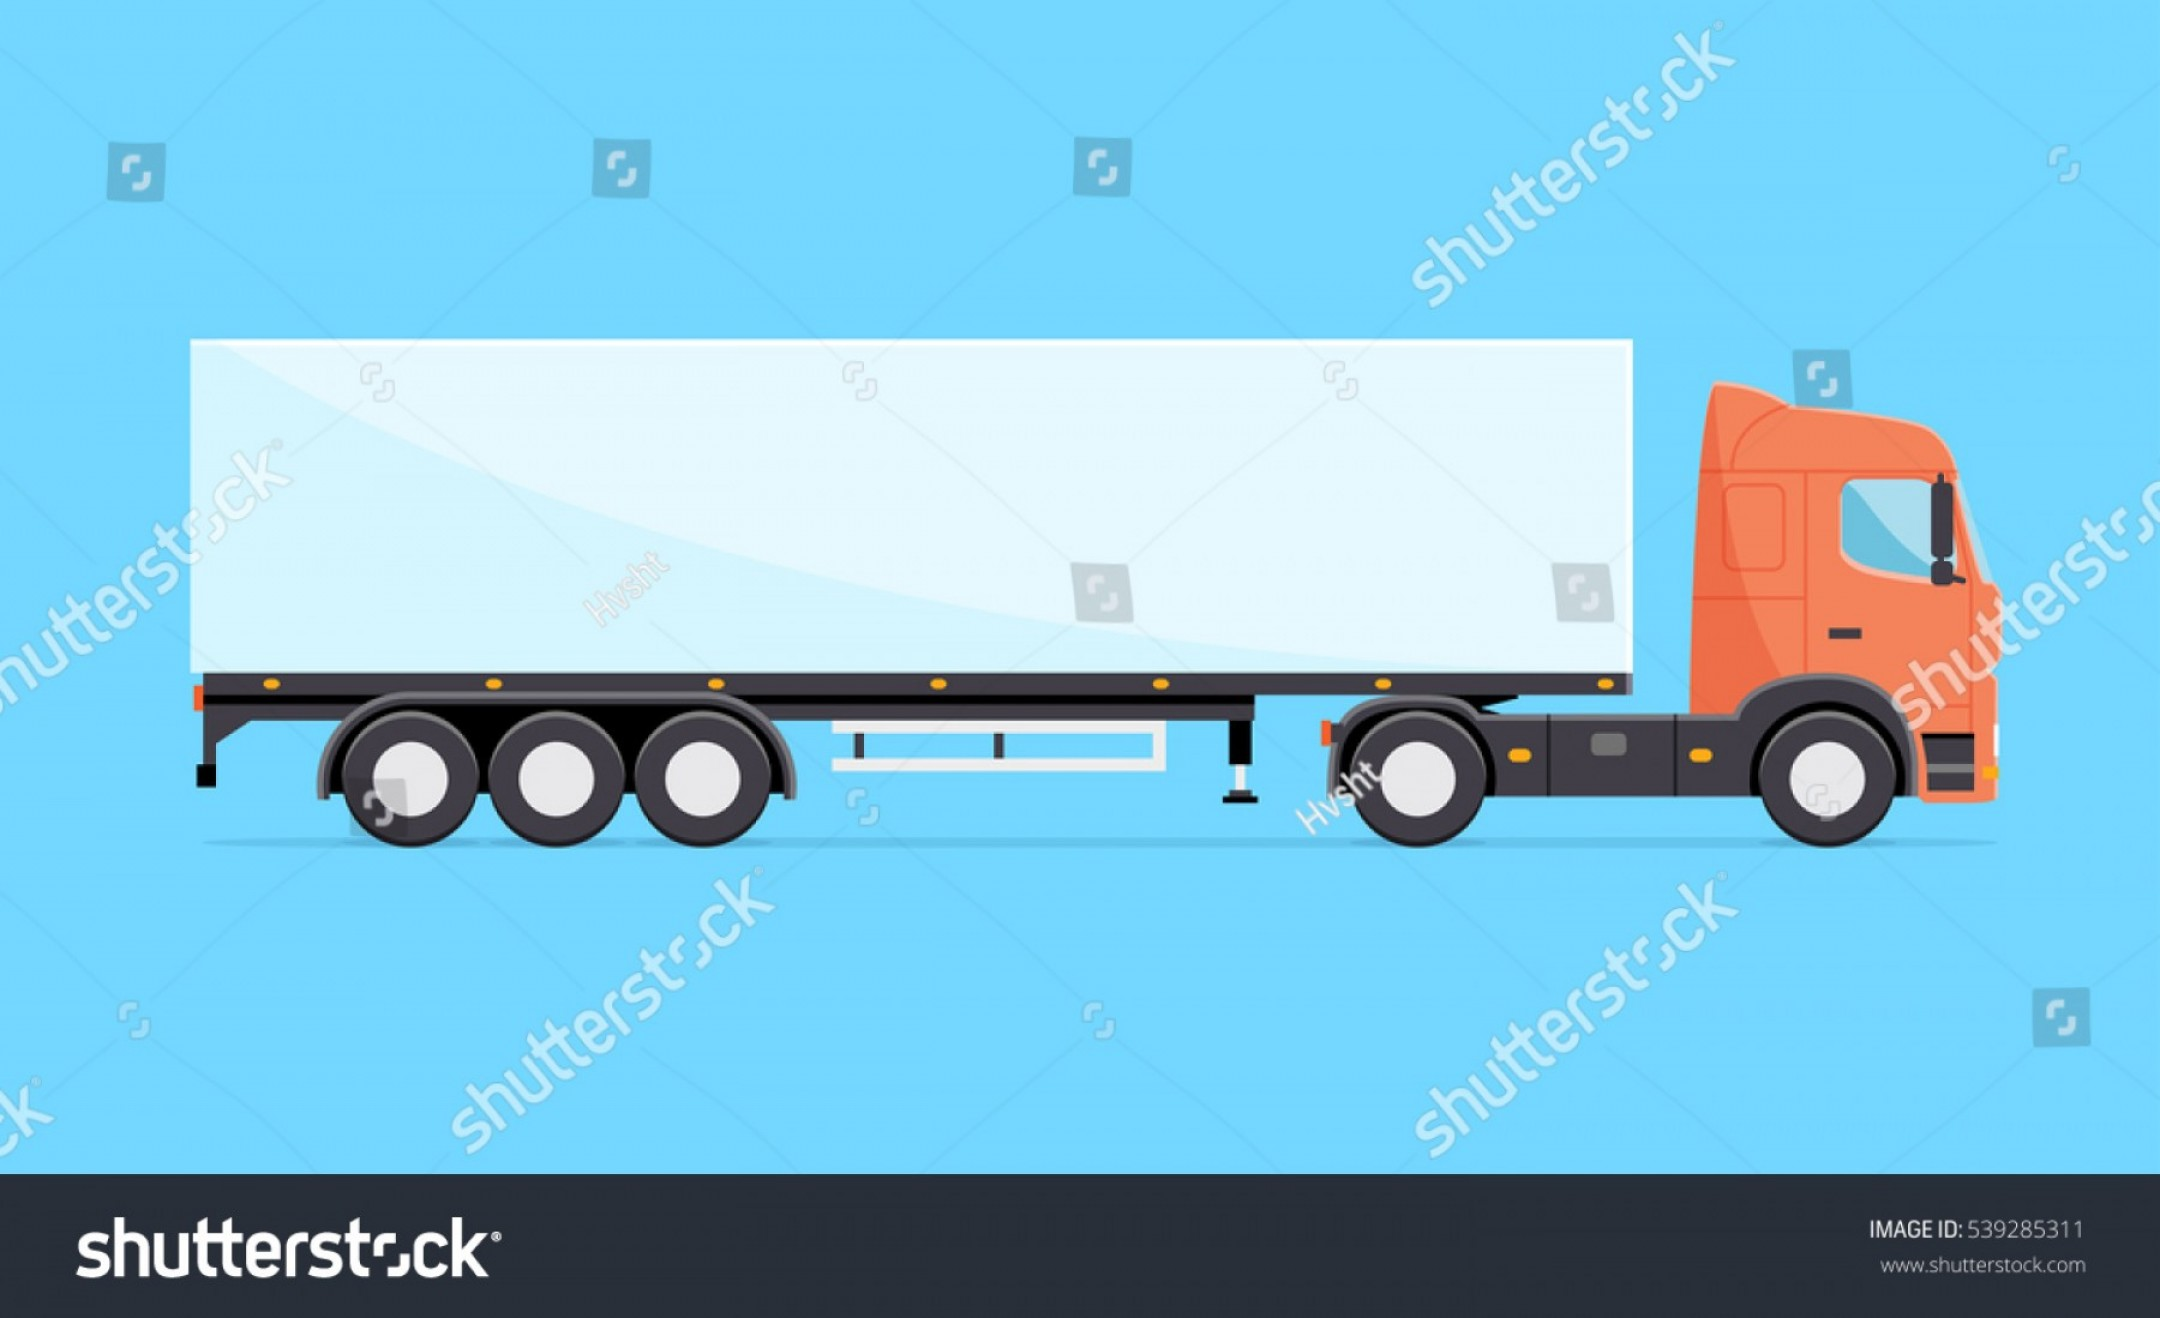 Vector Truck And Trailer Hauling: Colorful Vector Truck Illustration Heavy Semitrailer